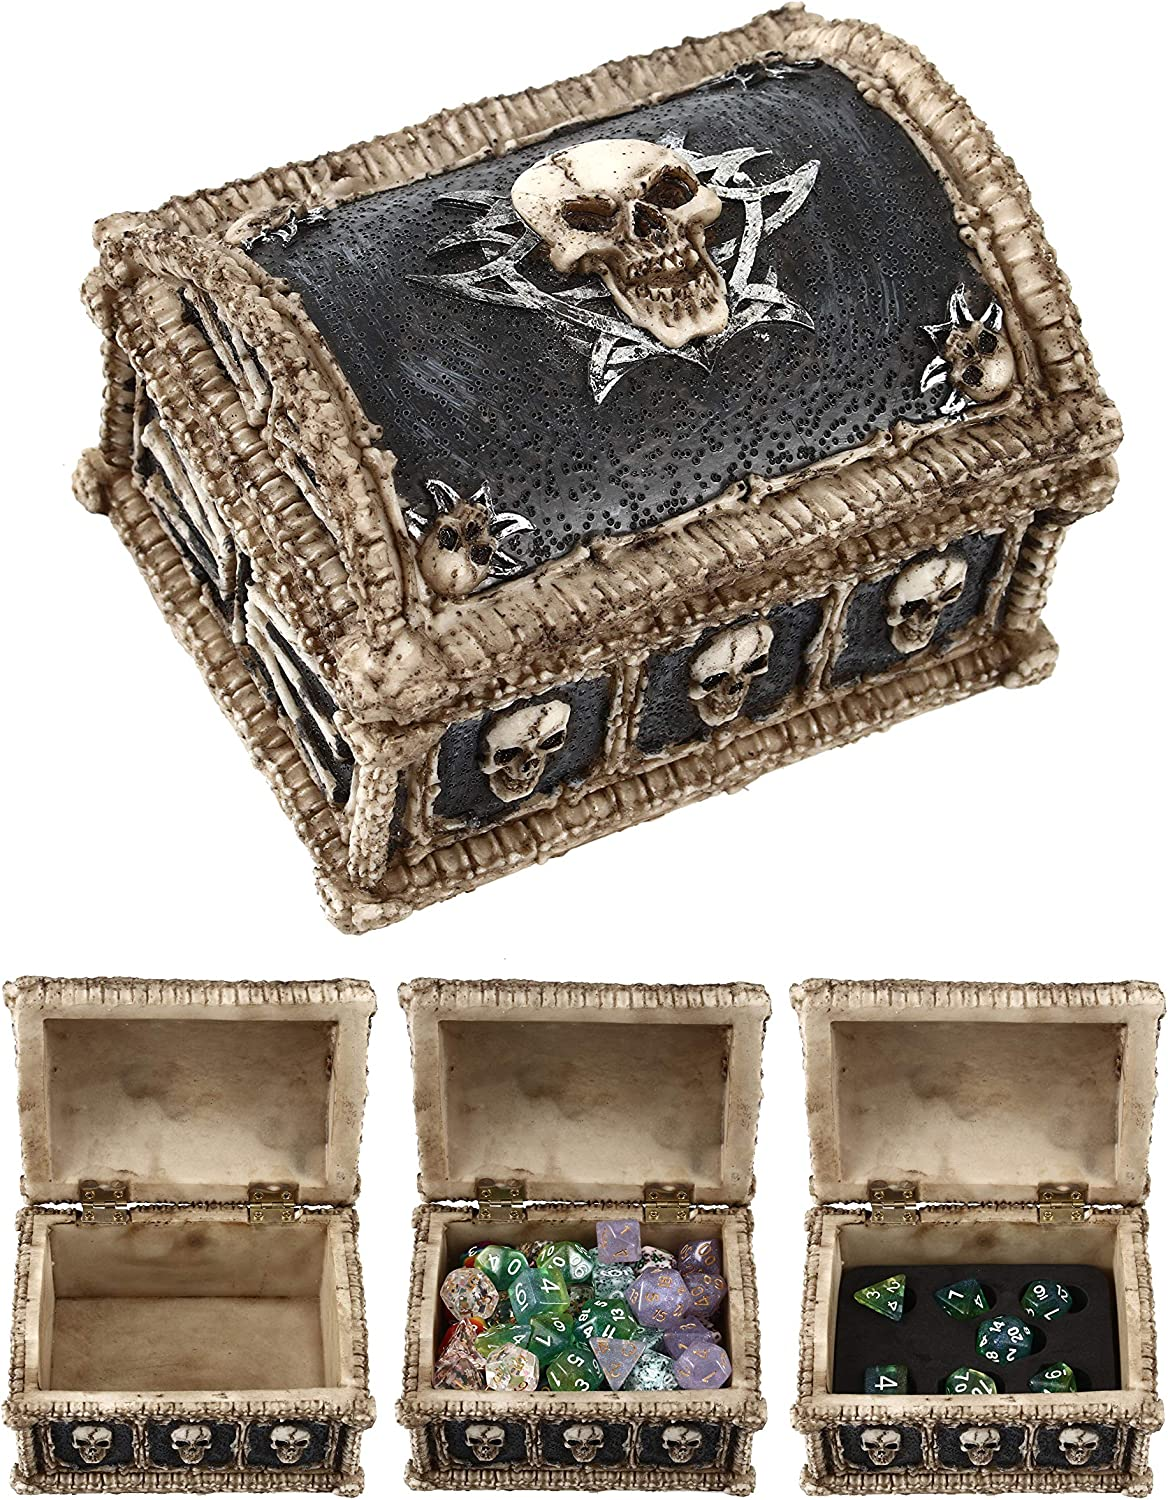 Container Holds up to 20 Sets of Polyhedral Dice or 140 Individual Dice Deluxe Large Skull and Bones Pirates Chest Dice Storage Box Forged Dice Co